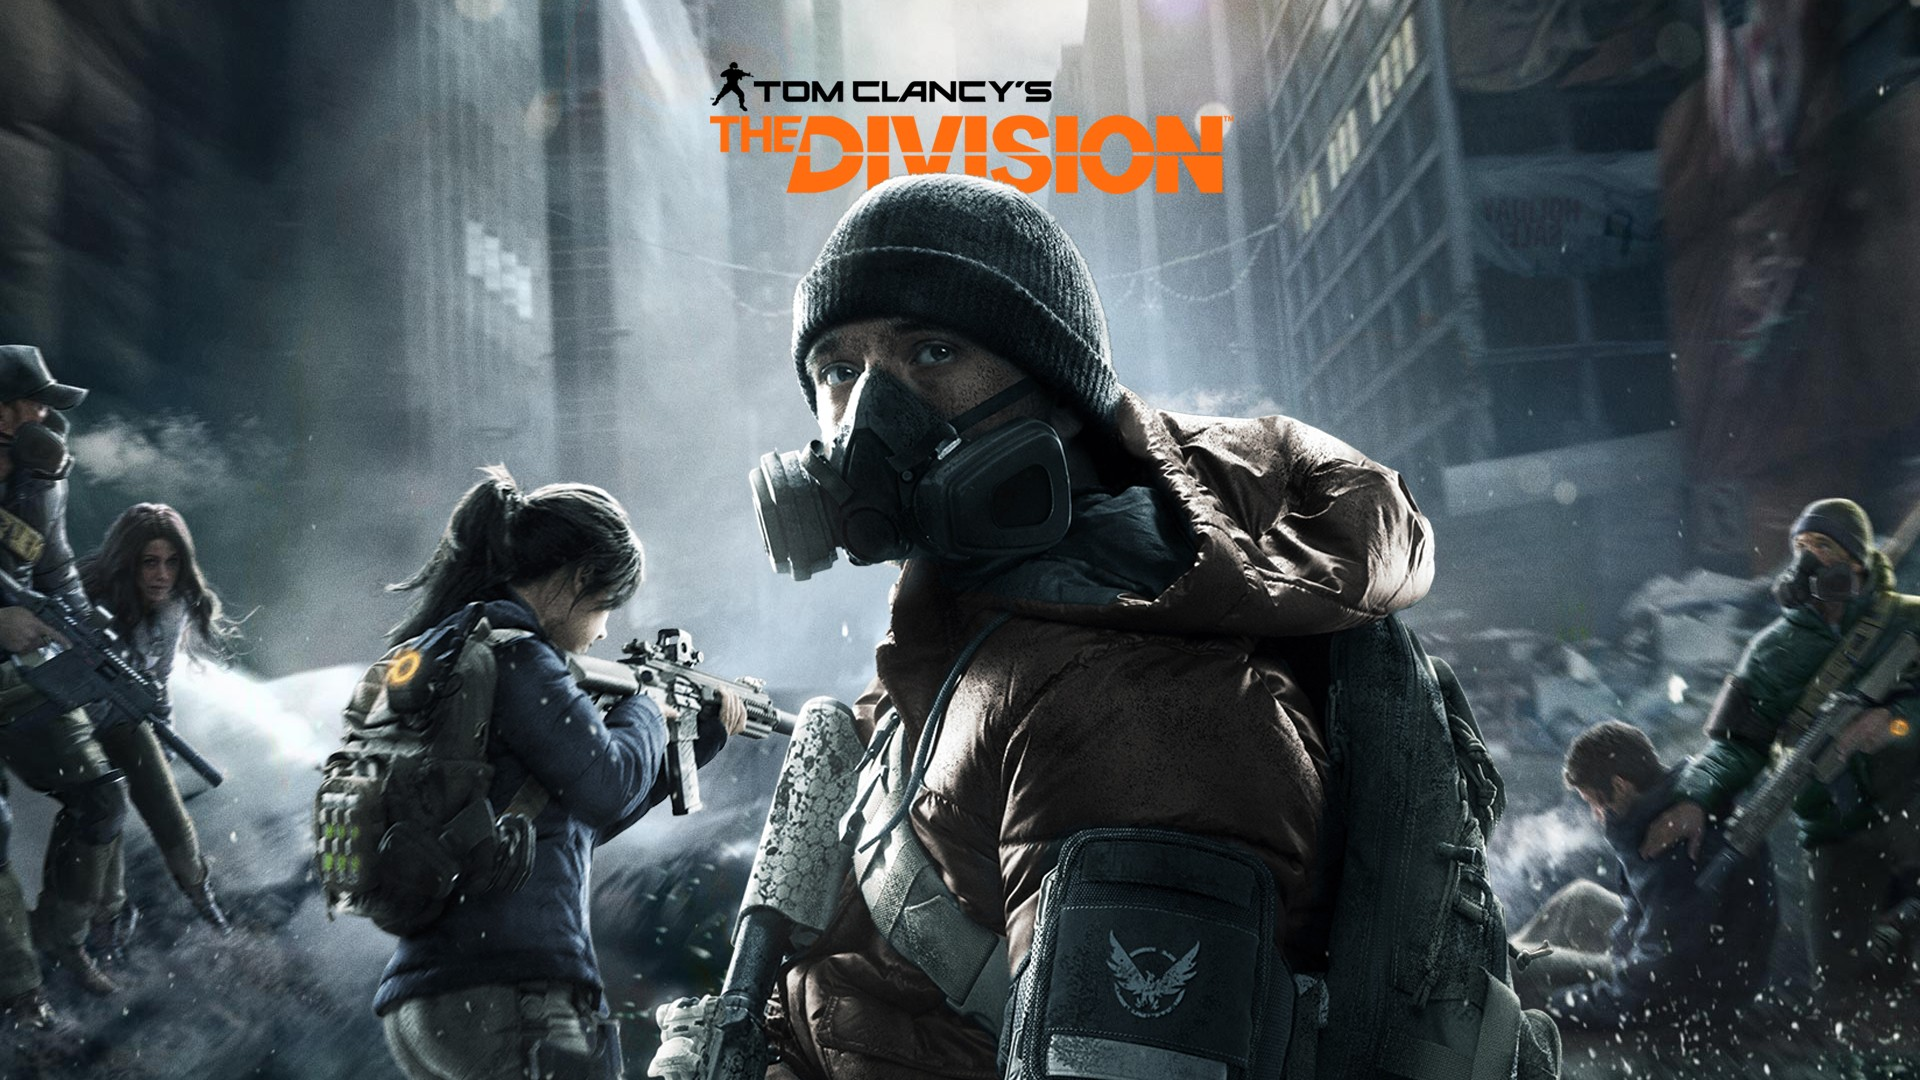 The Division wallpaper 1920x1080 ·① Download free ...